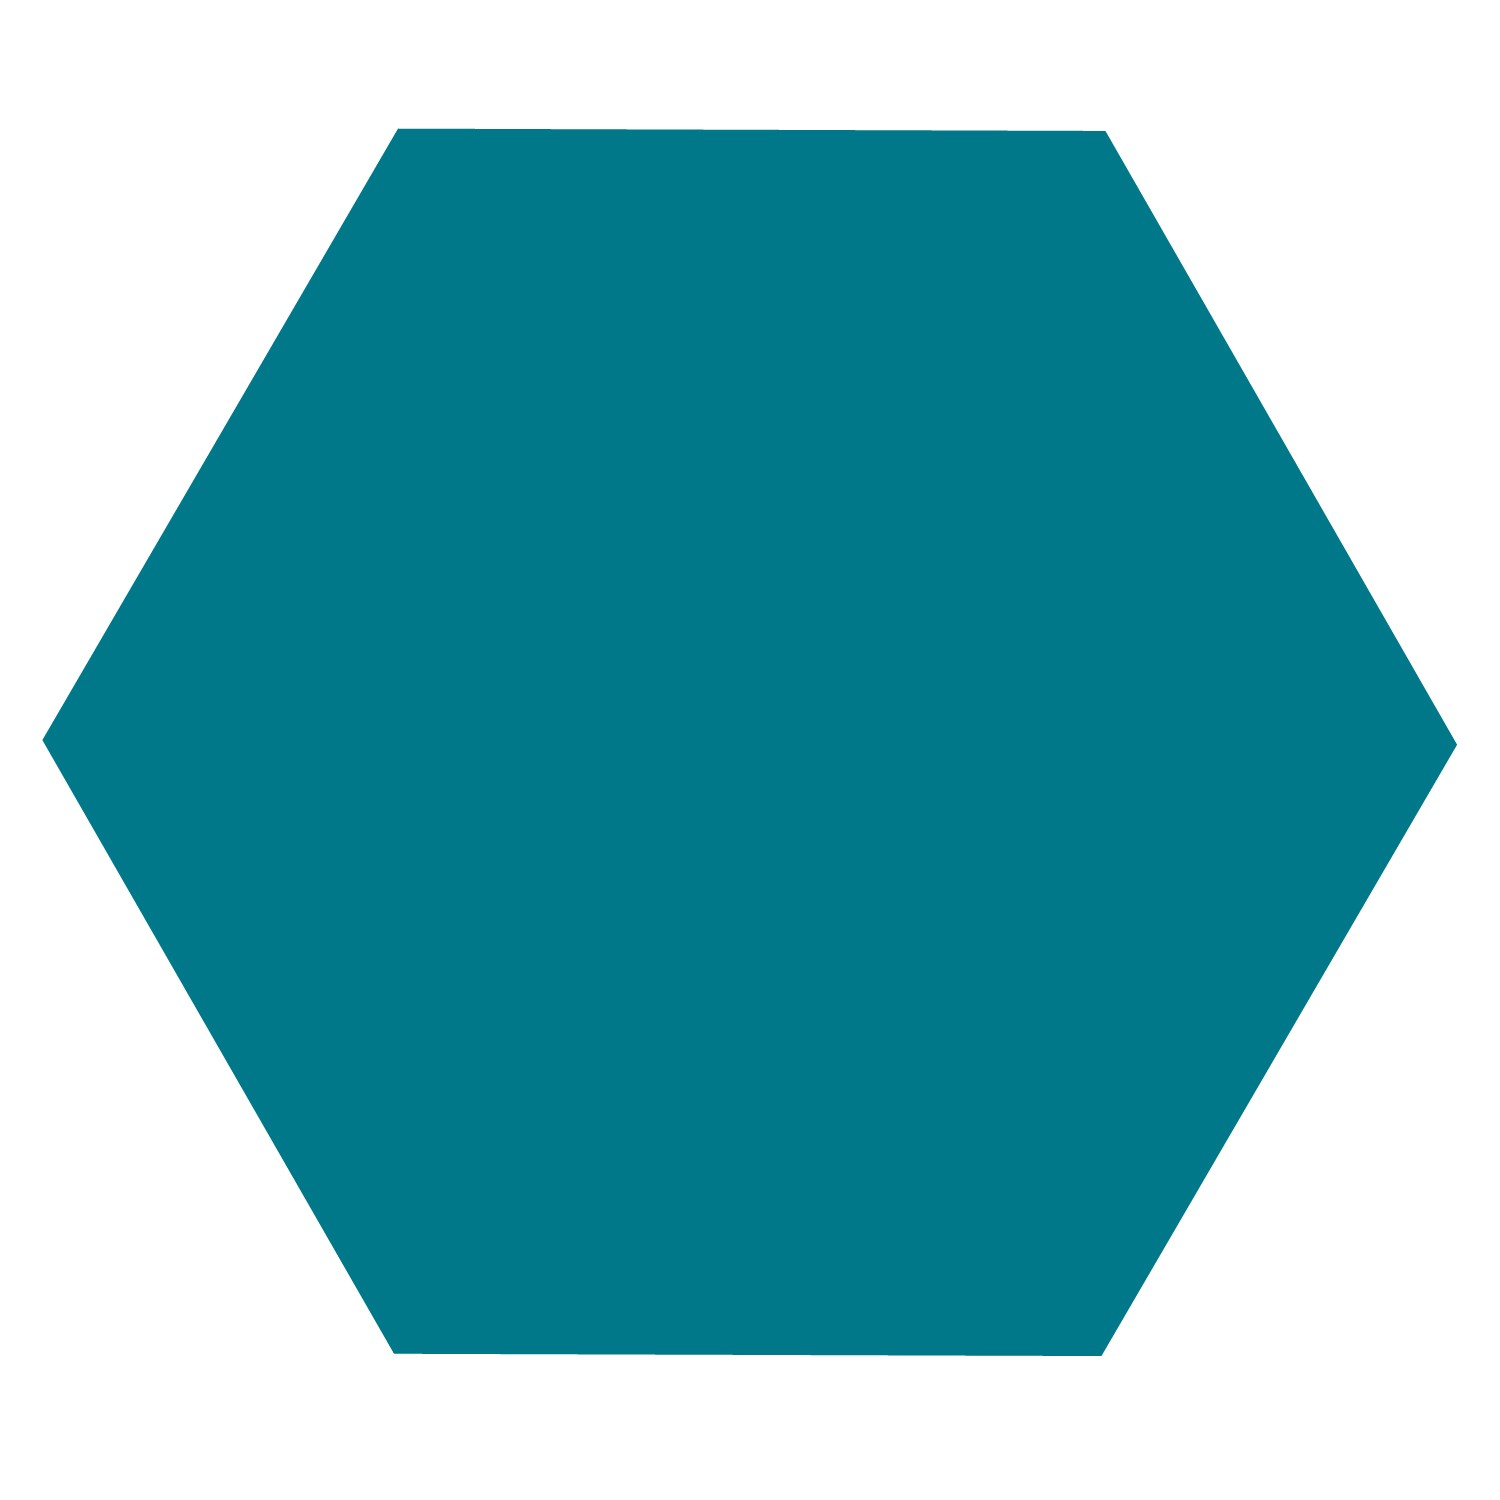 Hexagon High Quality Background on Wallpapers Vista